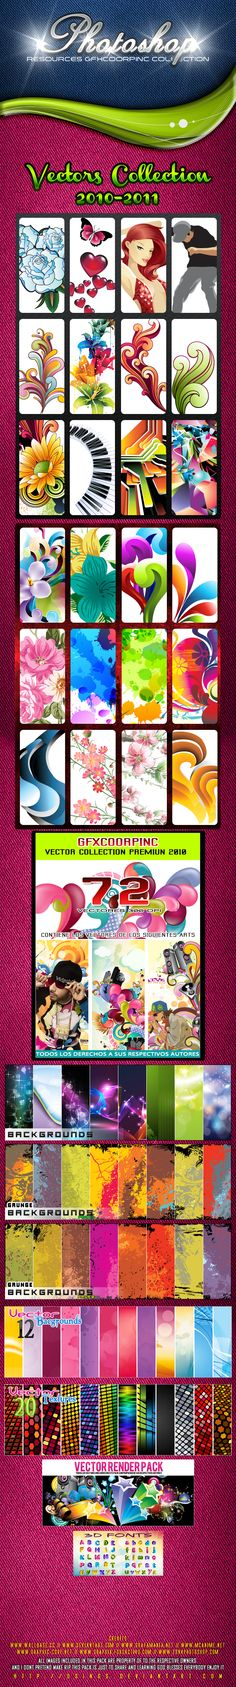 giga_free_vector_collection_2010_2011_by_dsings-d4o3m8s.png (700×5004)